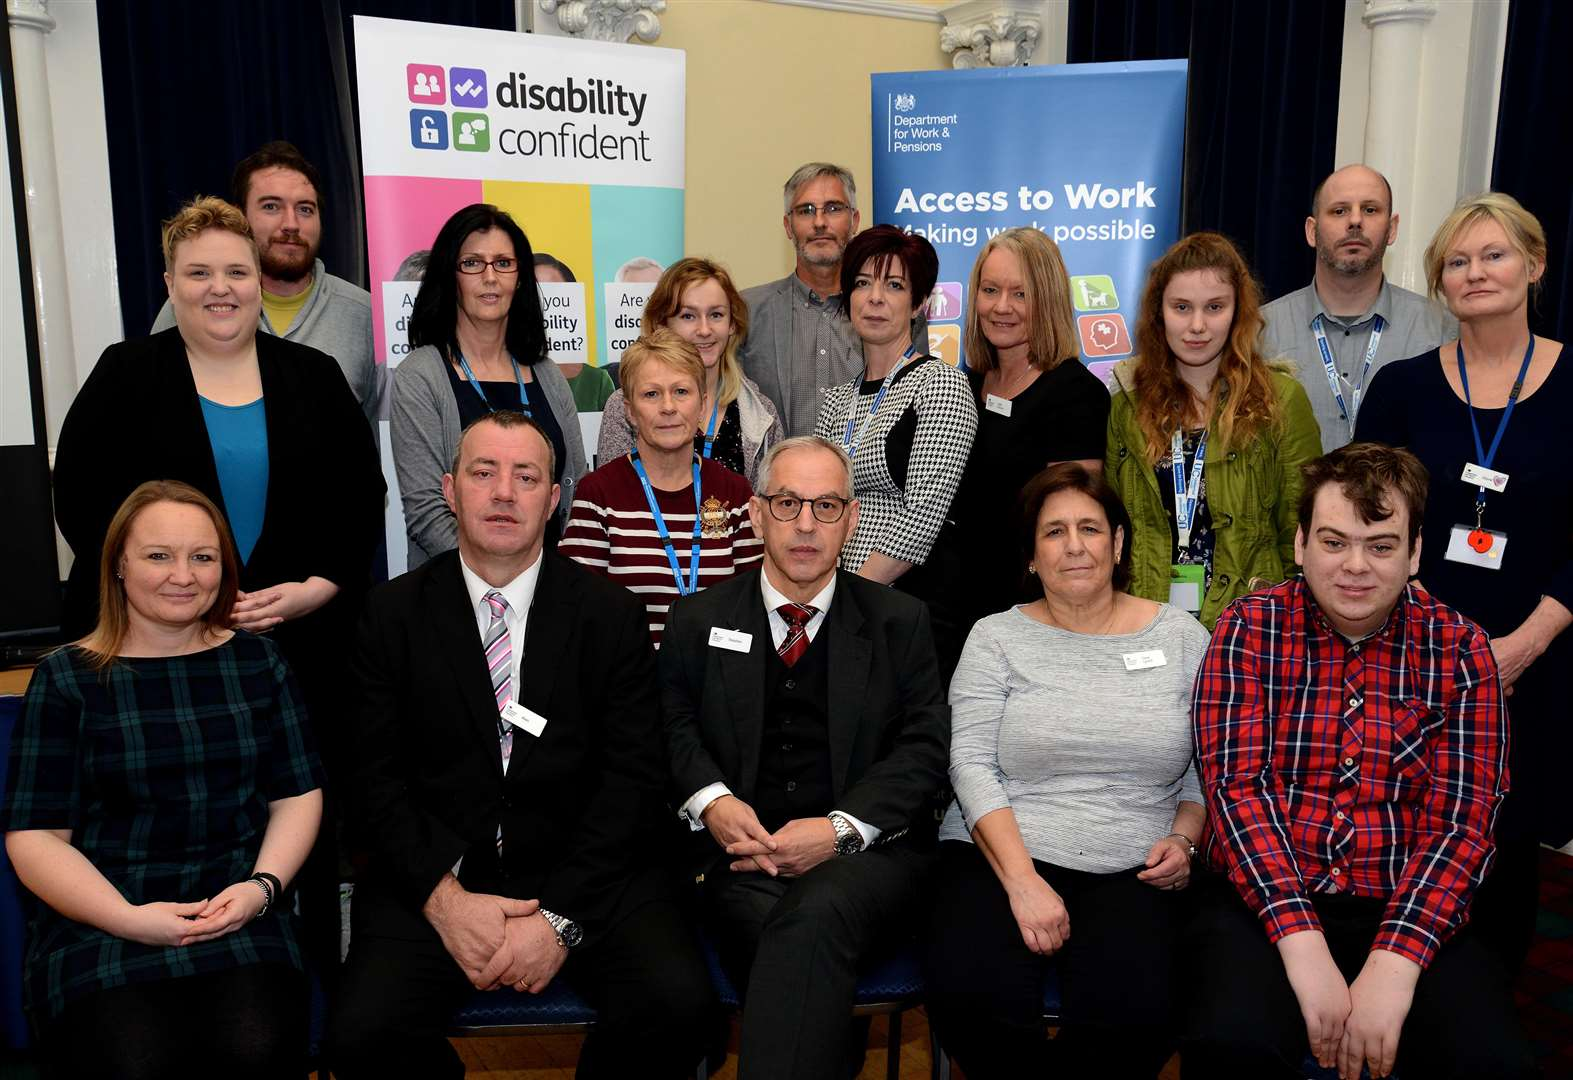 Jobcentre hosts disability 'confident' workshop for Grantham employers